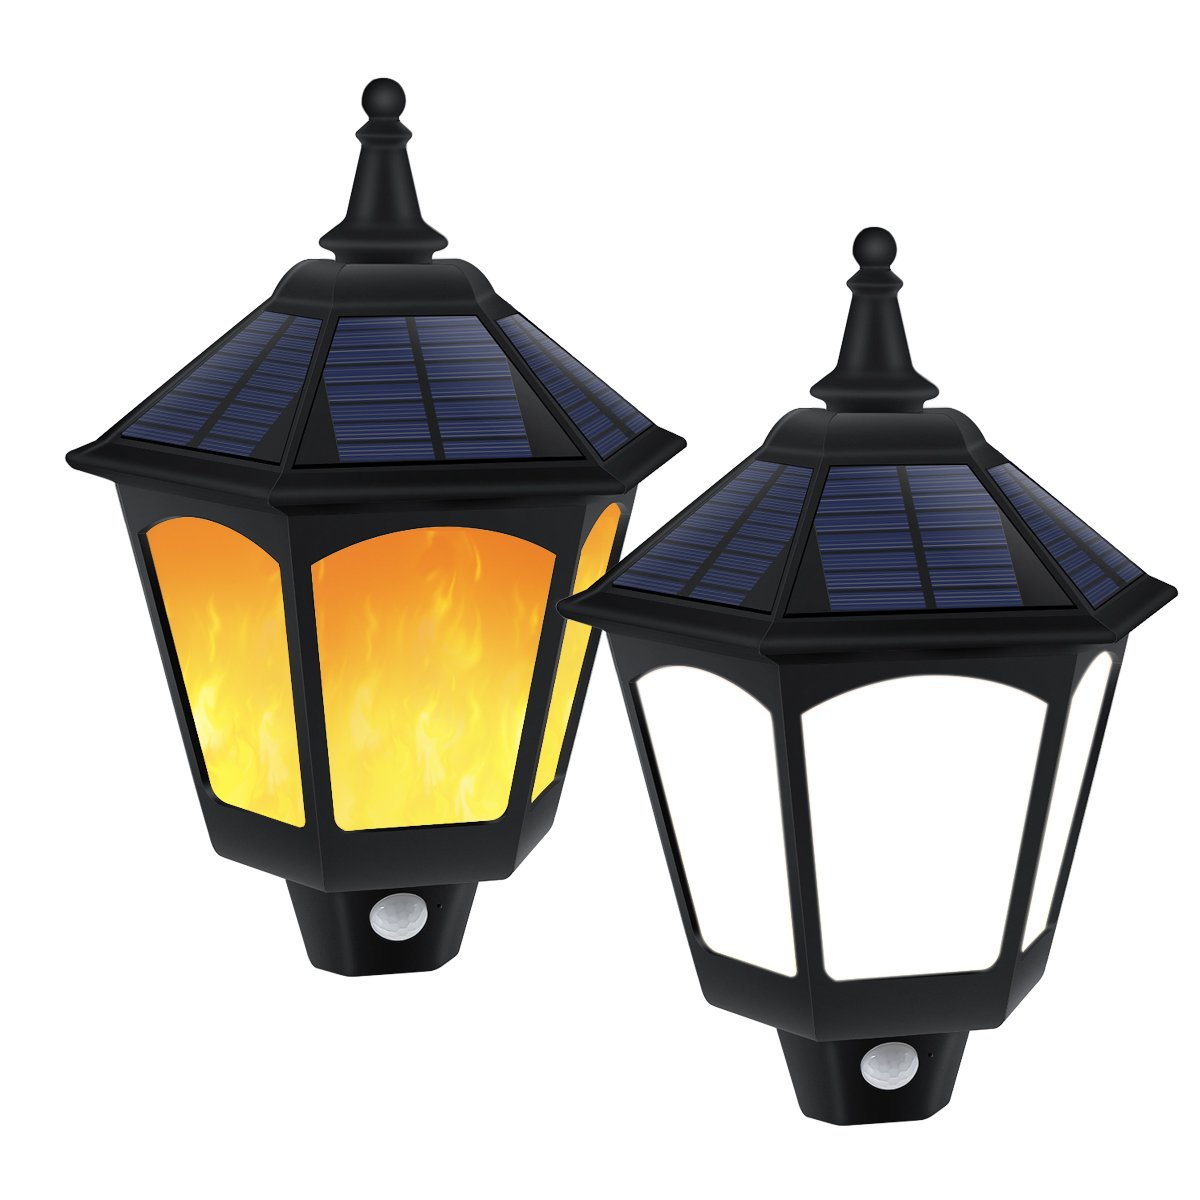 Solar Lights Outdoor, Motion Sensor Lights 6000k White Light + Dusk to Dawn Auto On/Off Warm Flickering Flames Lights for Garden Yard Pathway Front Door Patio Porch 2 Pack